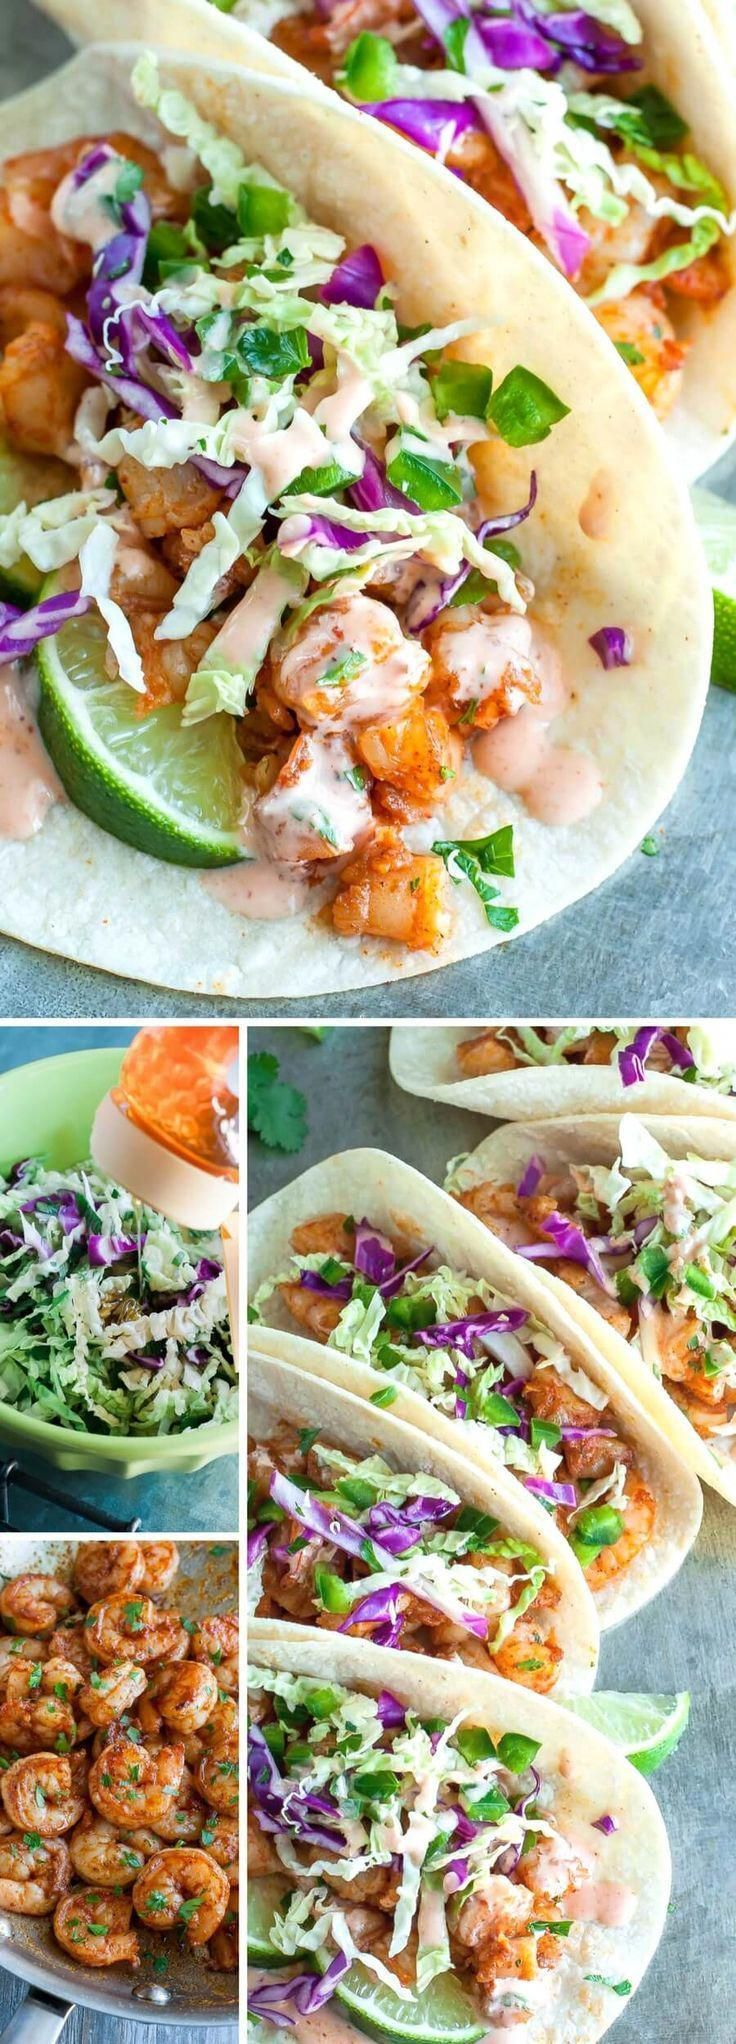 These Spicy Sriracha Shrimp Tacos fast, flavorful, and topped with a zesty Cilantro Lime Slaw that will rock yours socks! Healthy, Dairy-Free, + Gluten-free #healthytacos #cilantrolimeslaw These Spicy Sriracha Shrimp Tacos fast, flavorful, and topped with a zesty Cilantro Lime Slaw that will rock yours socks! Healthy, Dairy-Free, + Gluten-free #healthytacos #cilantrolimeslaw